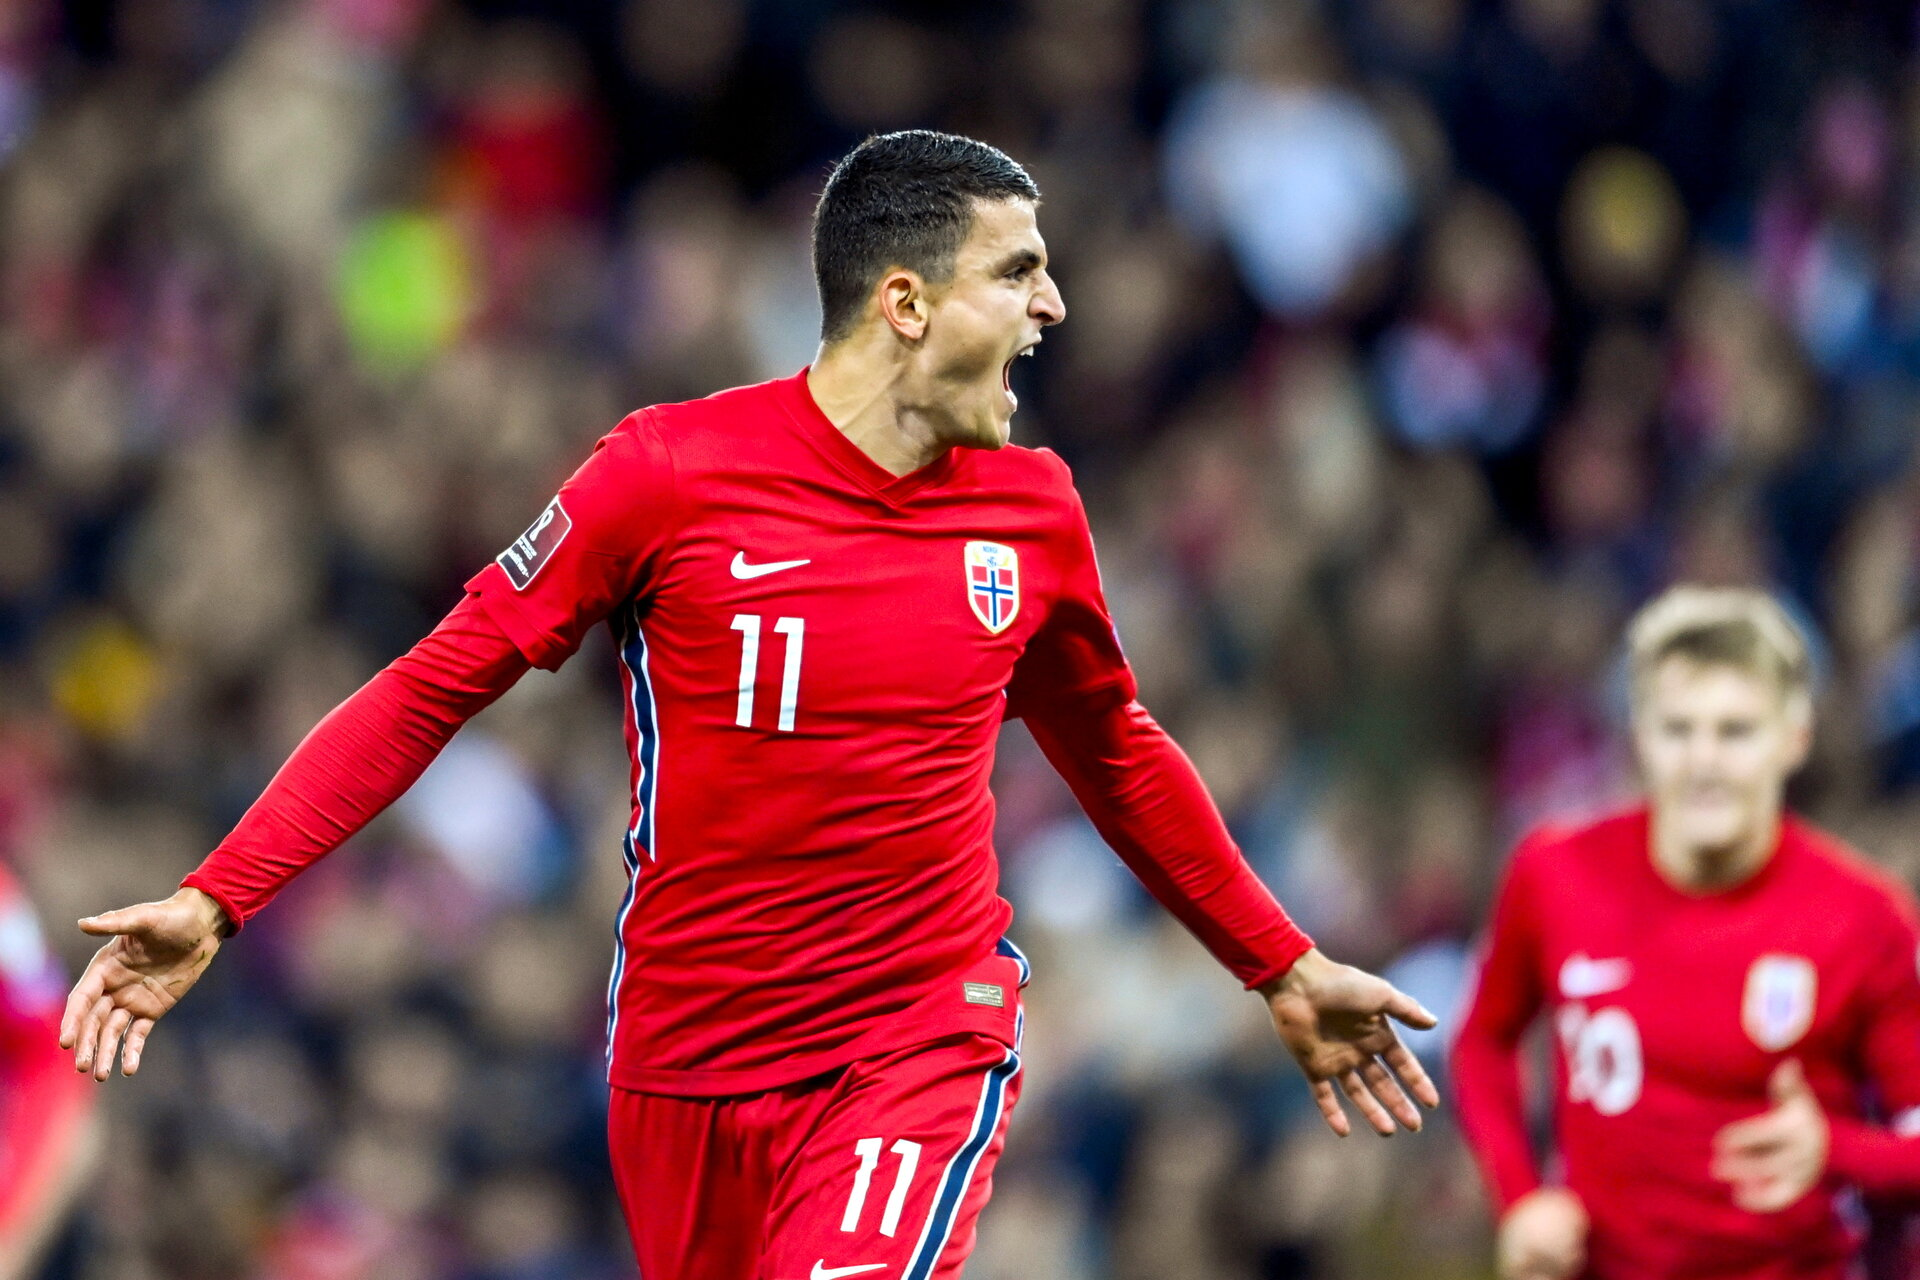 Soccer Football - World Cup - UEFA Qualifiers - Group G - Norway v Montenegro - Ullevaal Stadion, Oslo, Norway - October 11, 2021 Norway's Mohamed Elyounoussi celebrates scoring their first goal Annika Byrde/NTB via REUTERS    ATTENTION EDITORS - THIS IMAGE WAS PROVIDED BY A THIRD PARTY. NORWAY OUT. NO COMMERCIAL OR EDITORIAL SALES IN NORWAY.